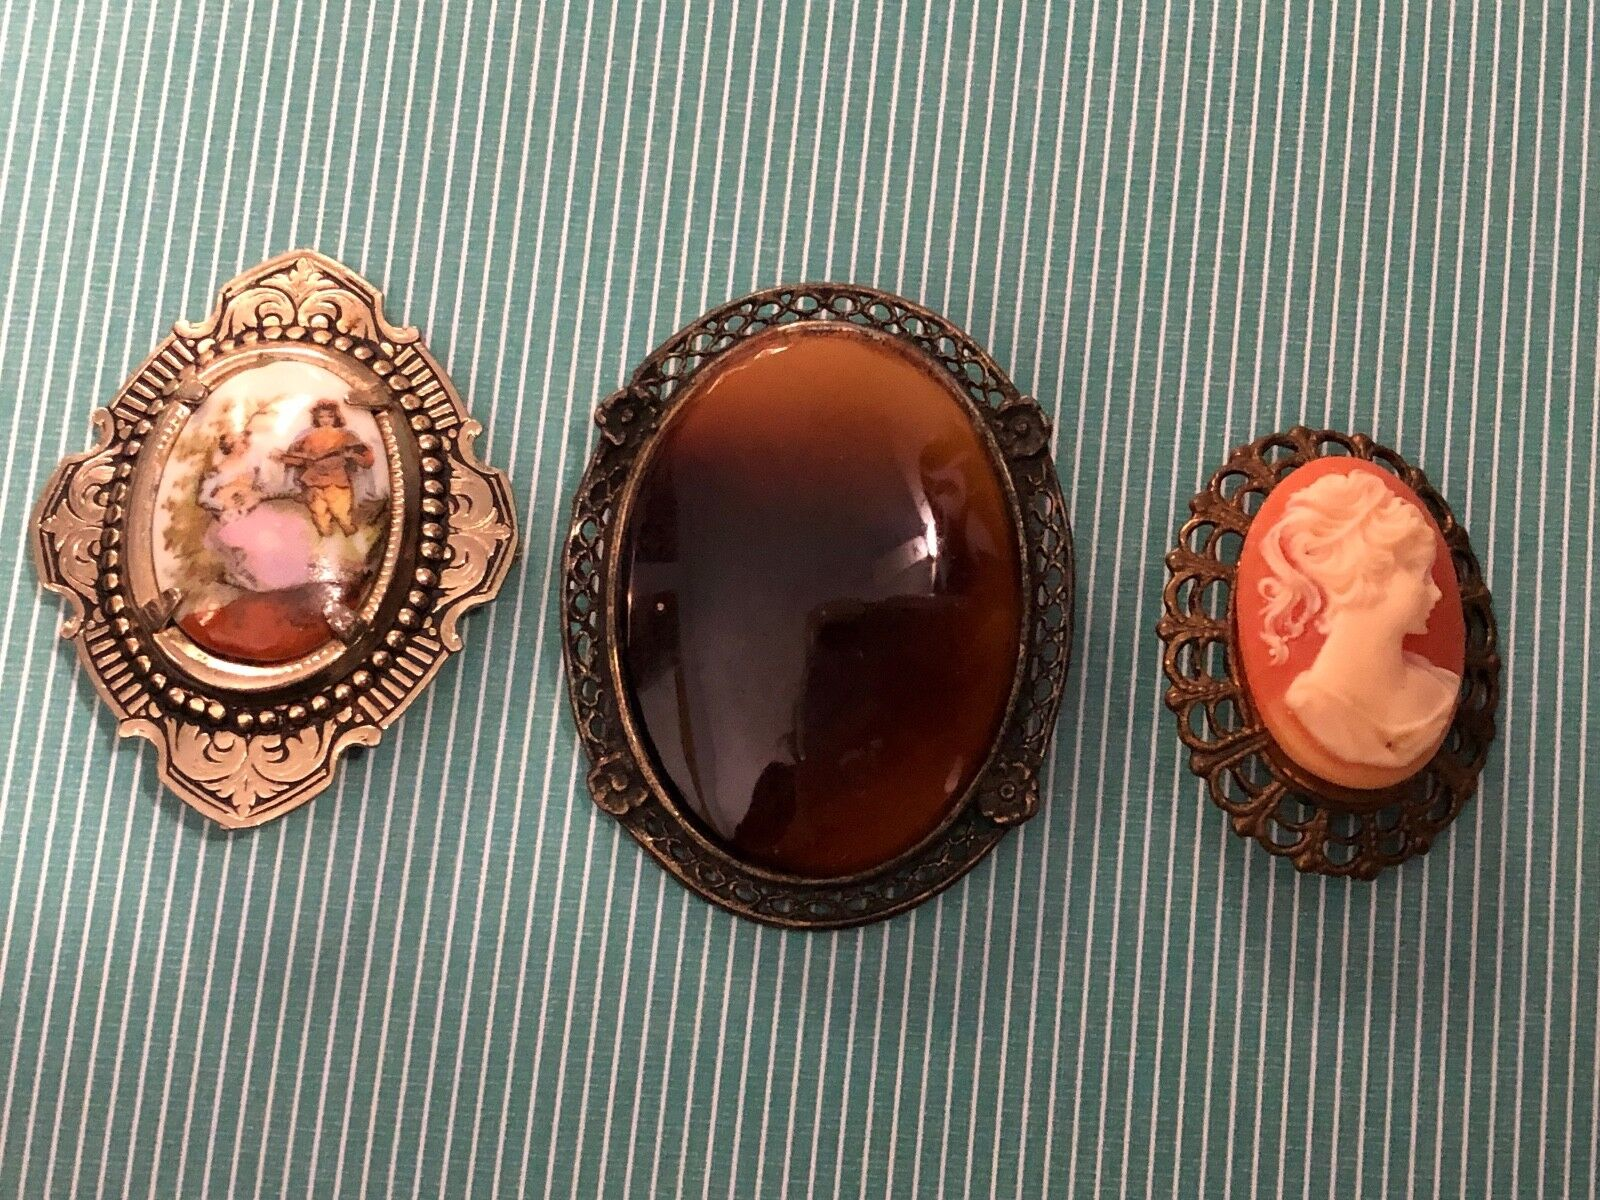 Gorgeous Antique Pendant   Brooch   Pin Vintage Carved Shell Cameo